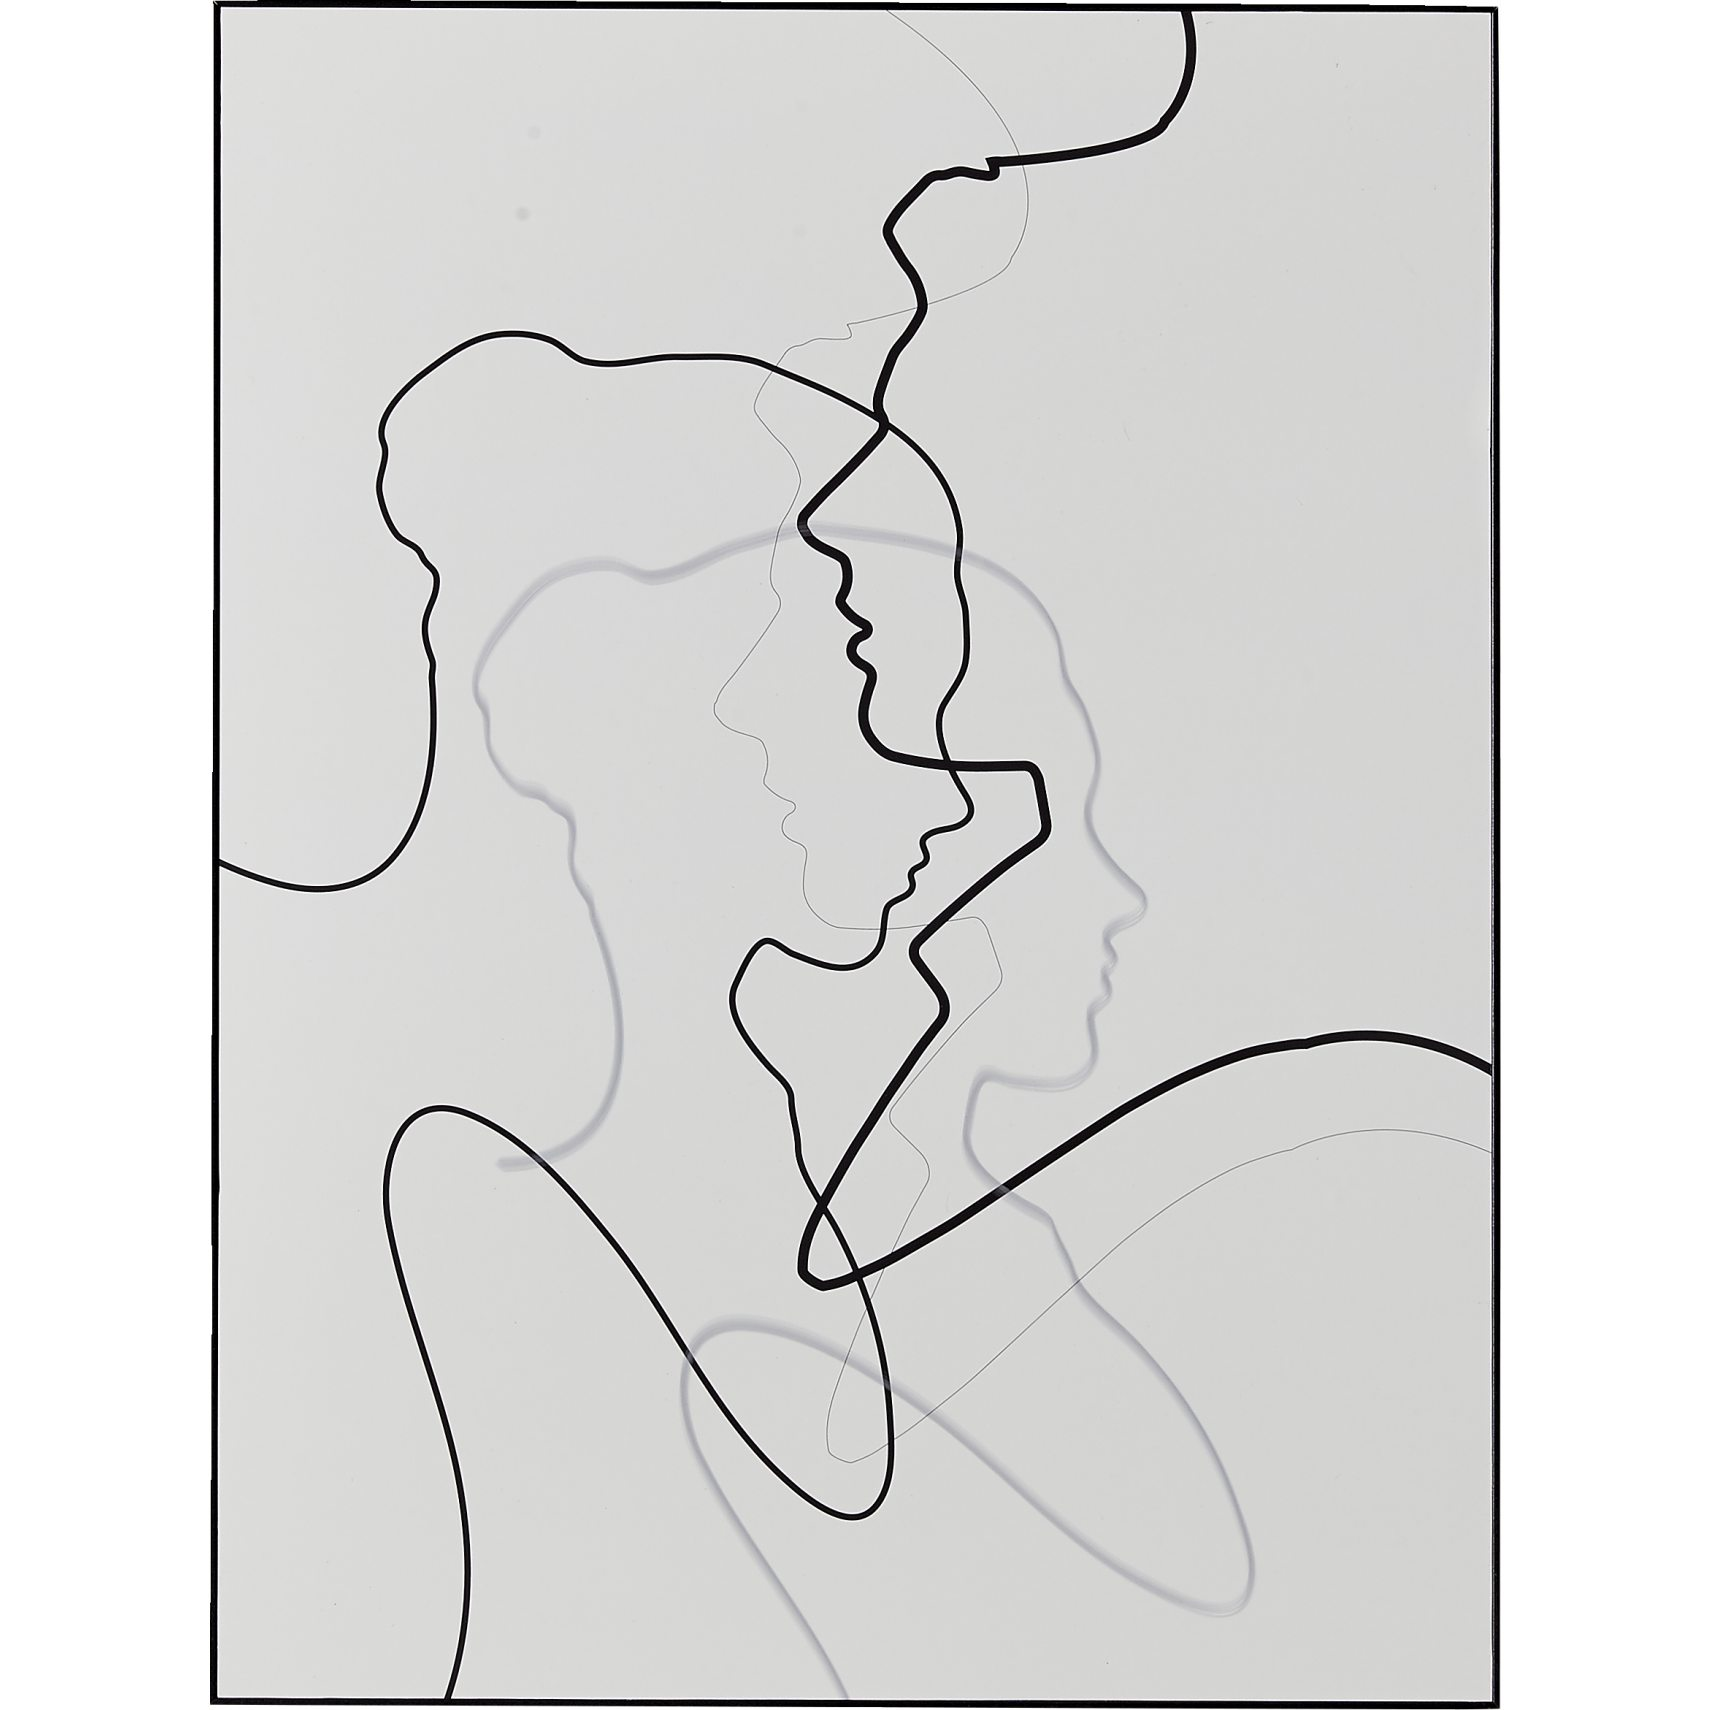 Together Female Plakat 60 x 80 x 7 cm - Blank, blank og Blank